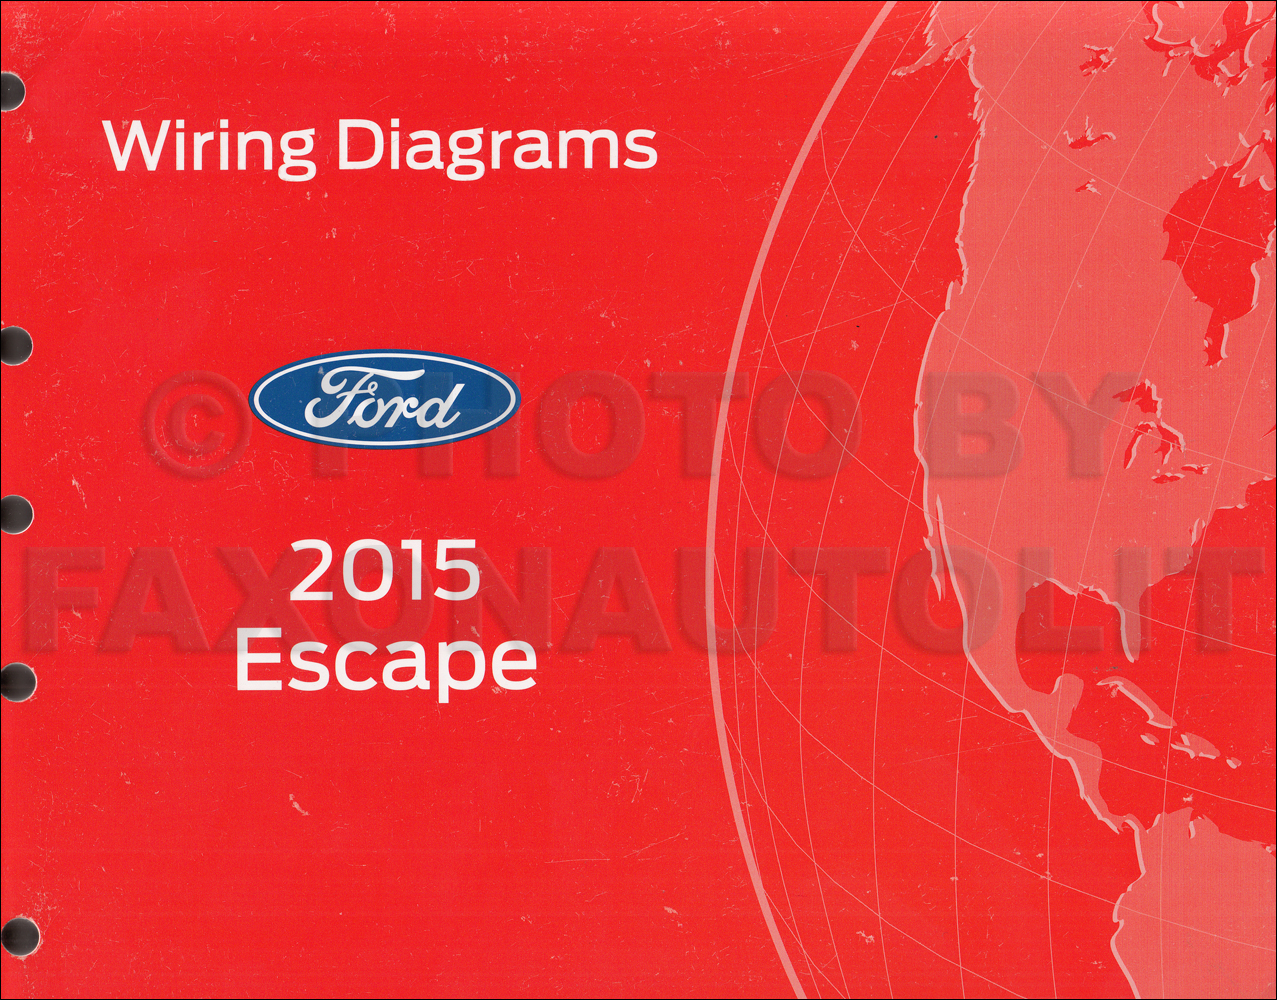 hight resolution of 2015 ford escape wiring diagram